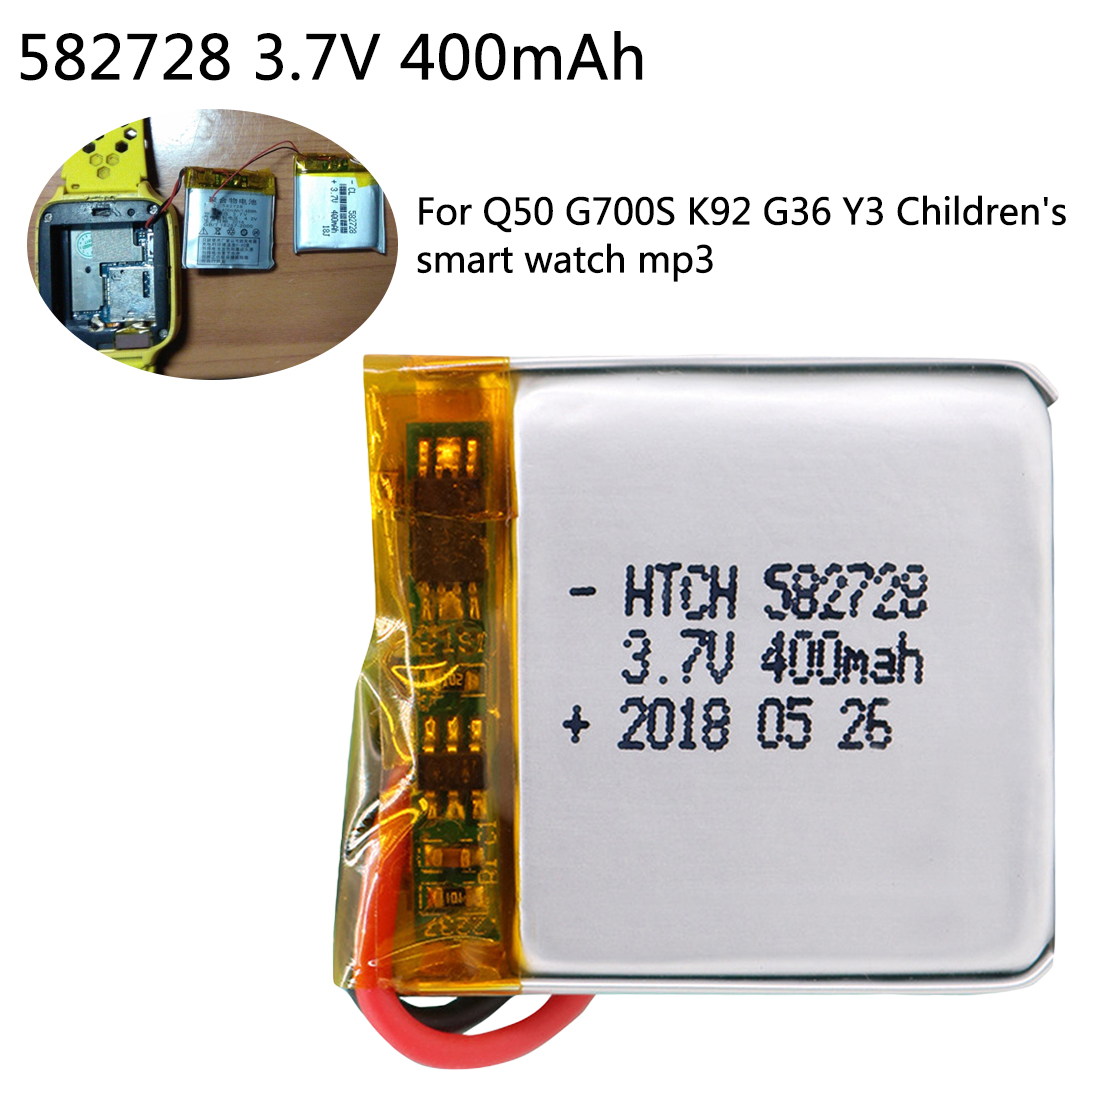 Rechargeable Batteries Sincere 400mah 3.7v 582728 Rechargeable Li-polymer Li-ion Battery For Q50 G700s K92 G36 Y3 Childrens Smart Watch Mp3 Bluetooth Headset Consumer Electronics